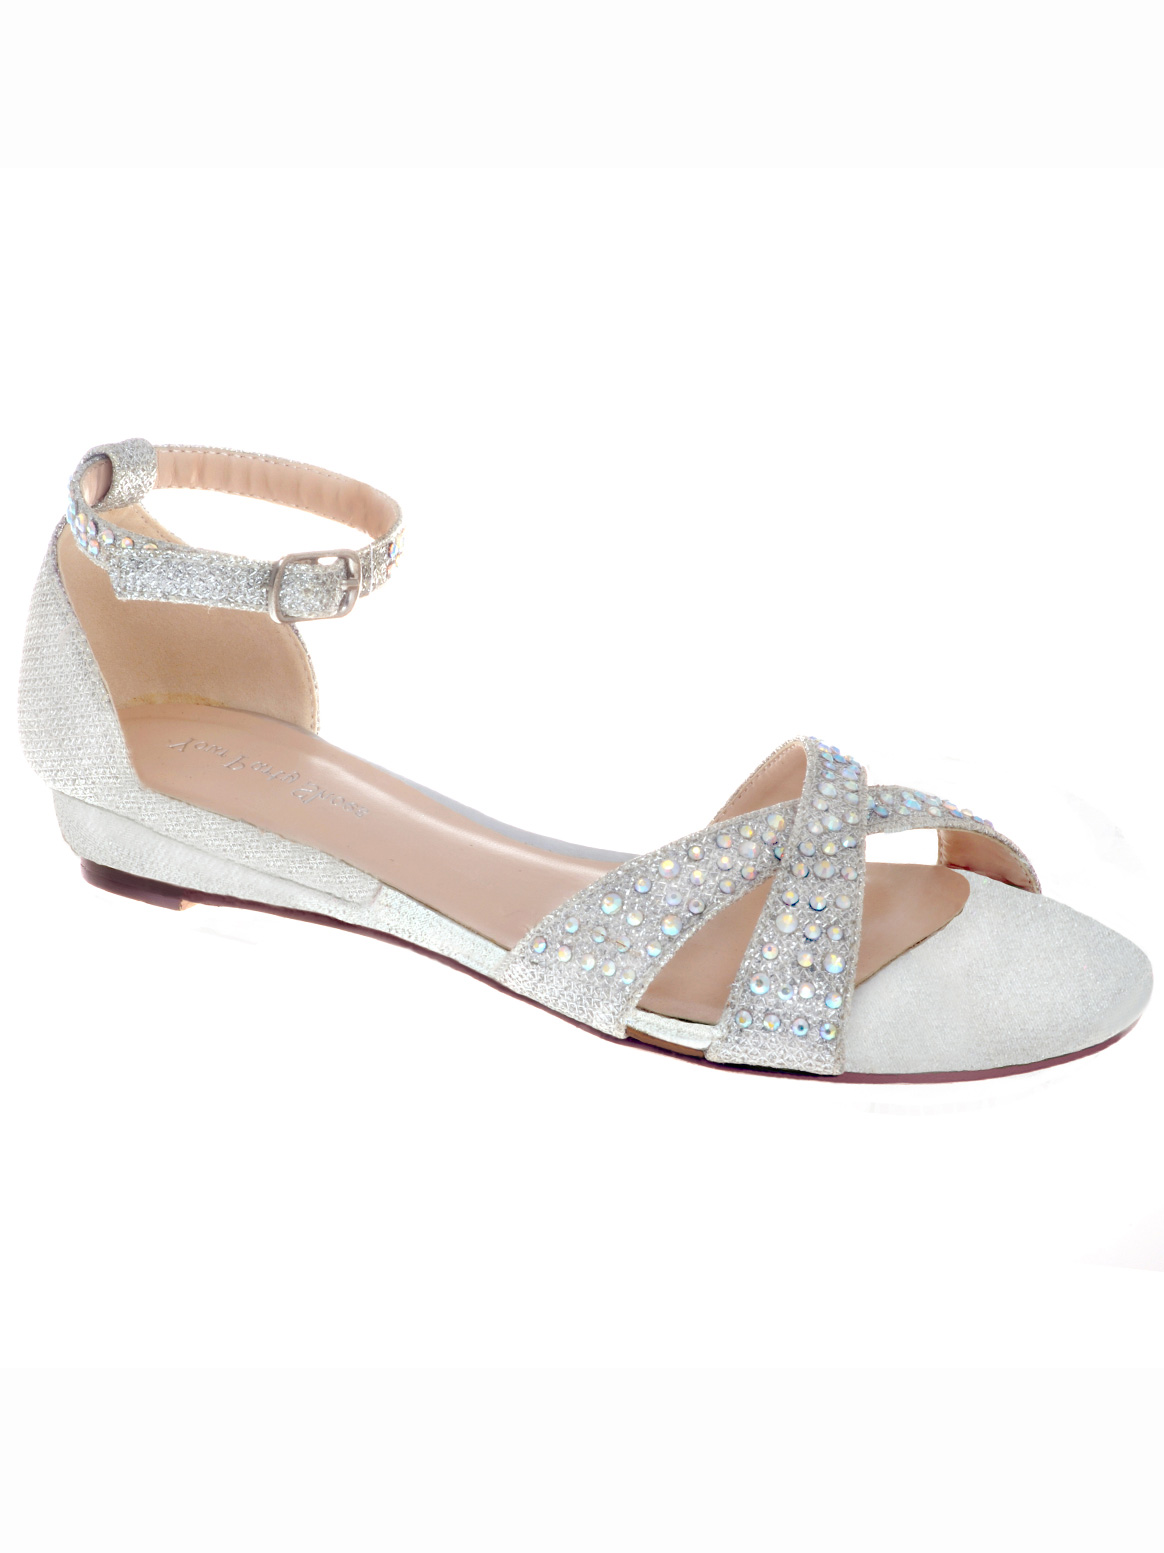 Wedding Prom Sandals your party shoes 822 lilly silver prom sandalsdressprom net embellished sandals 822